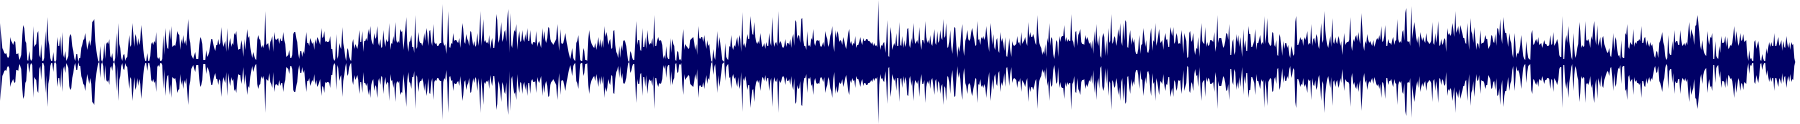 waveform of track #77512